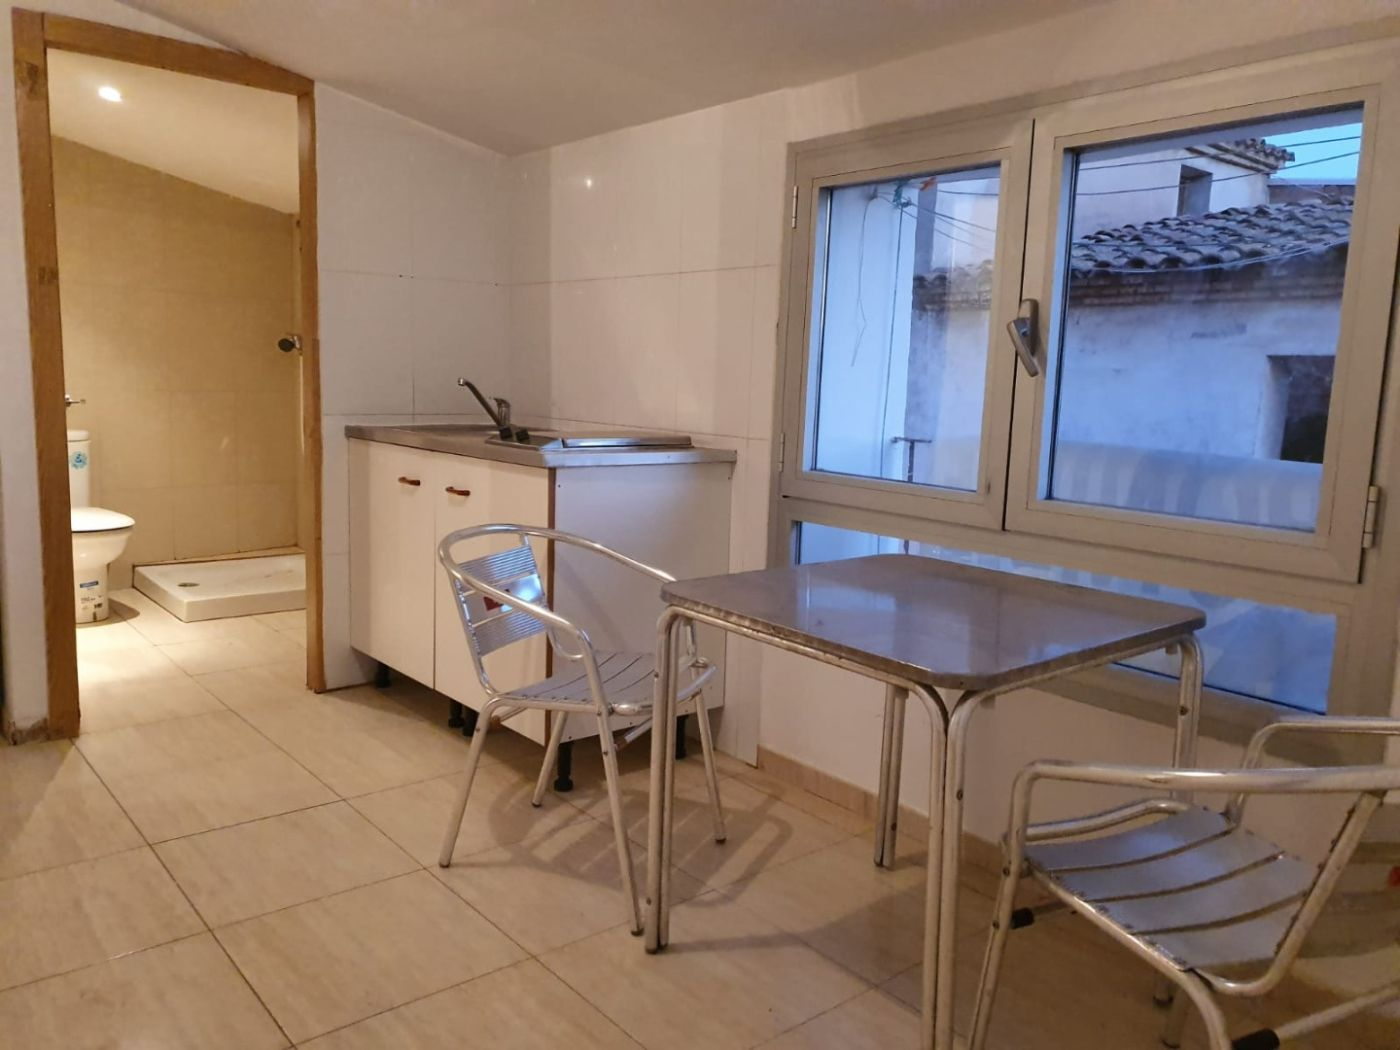 Location Appartement à Soses